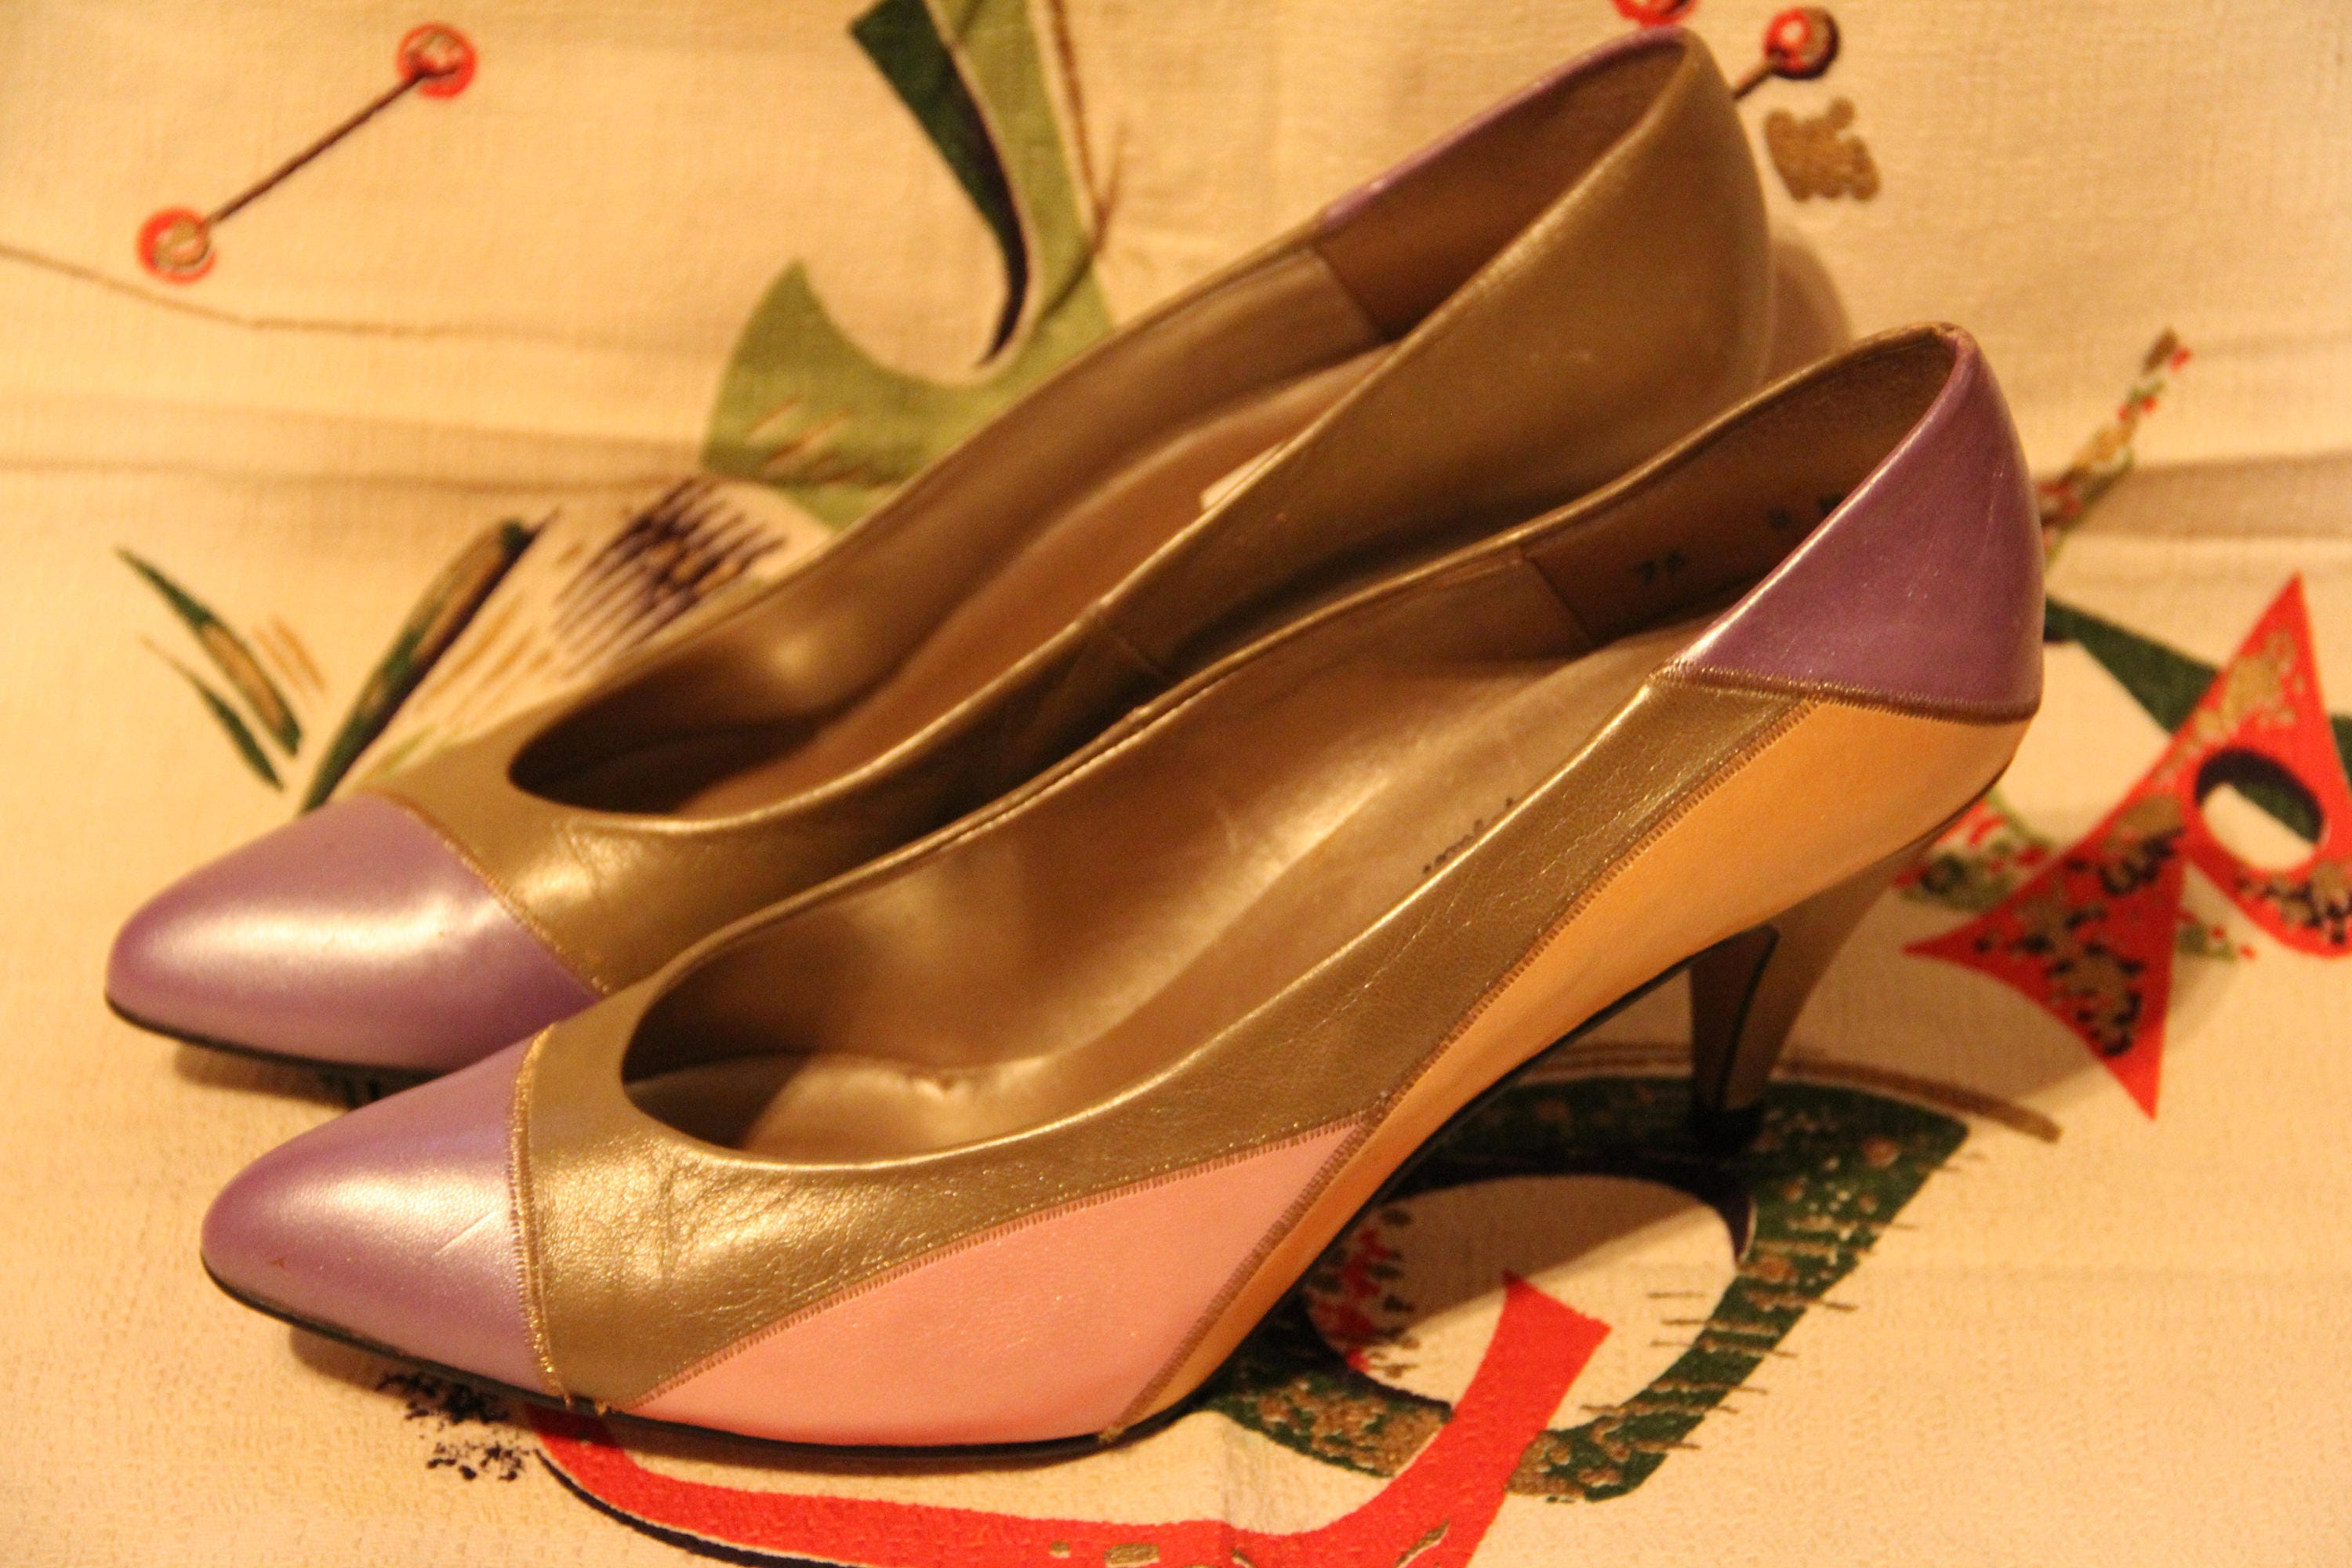 Spanish Leather Collection by Sergio Zelcer Dark Gold Leather Pumps 6 1/2 M New